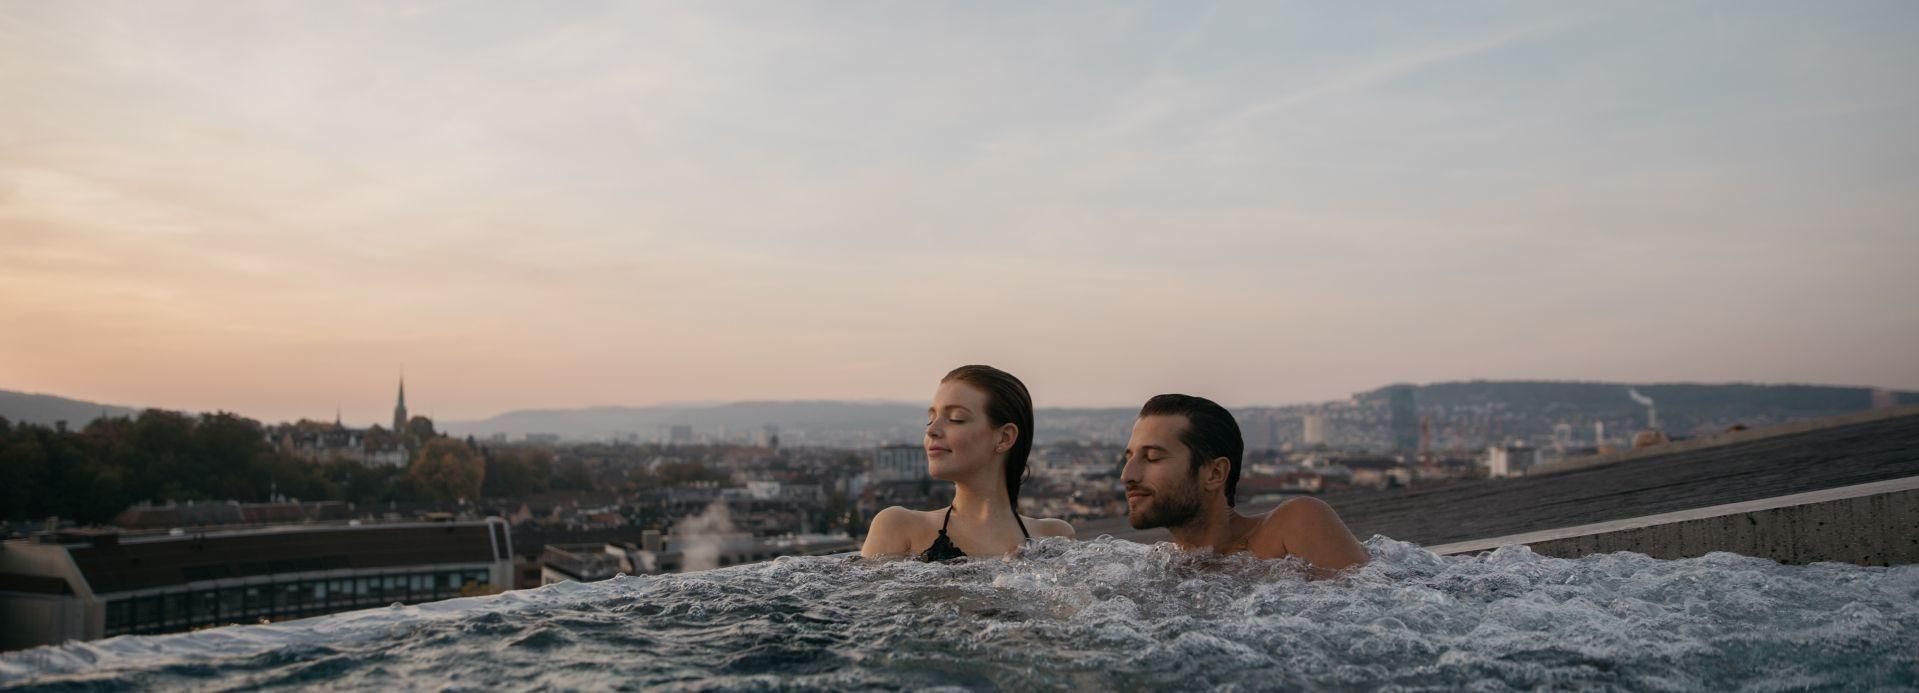 Zurich: Thermal Baths and Spa with Panoramic Views